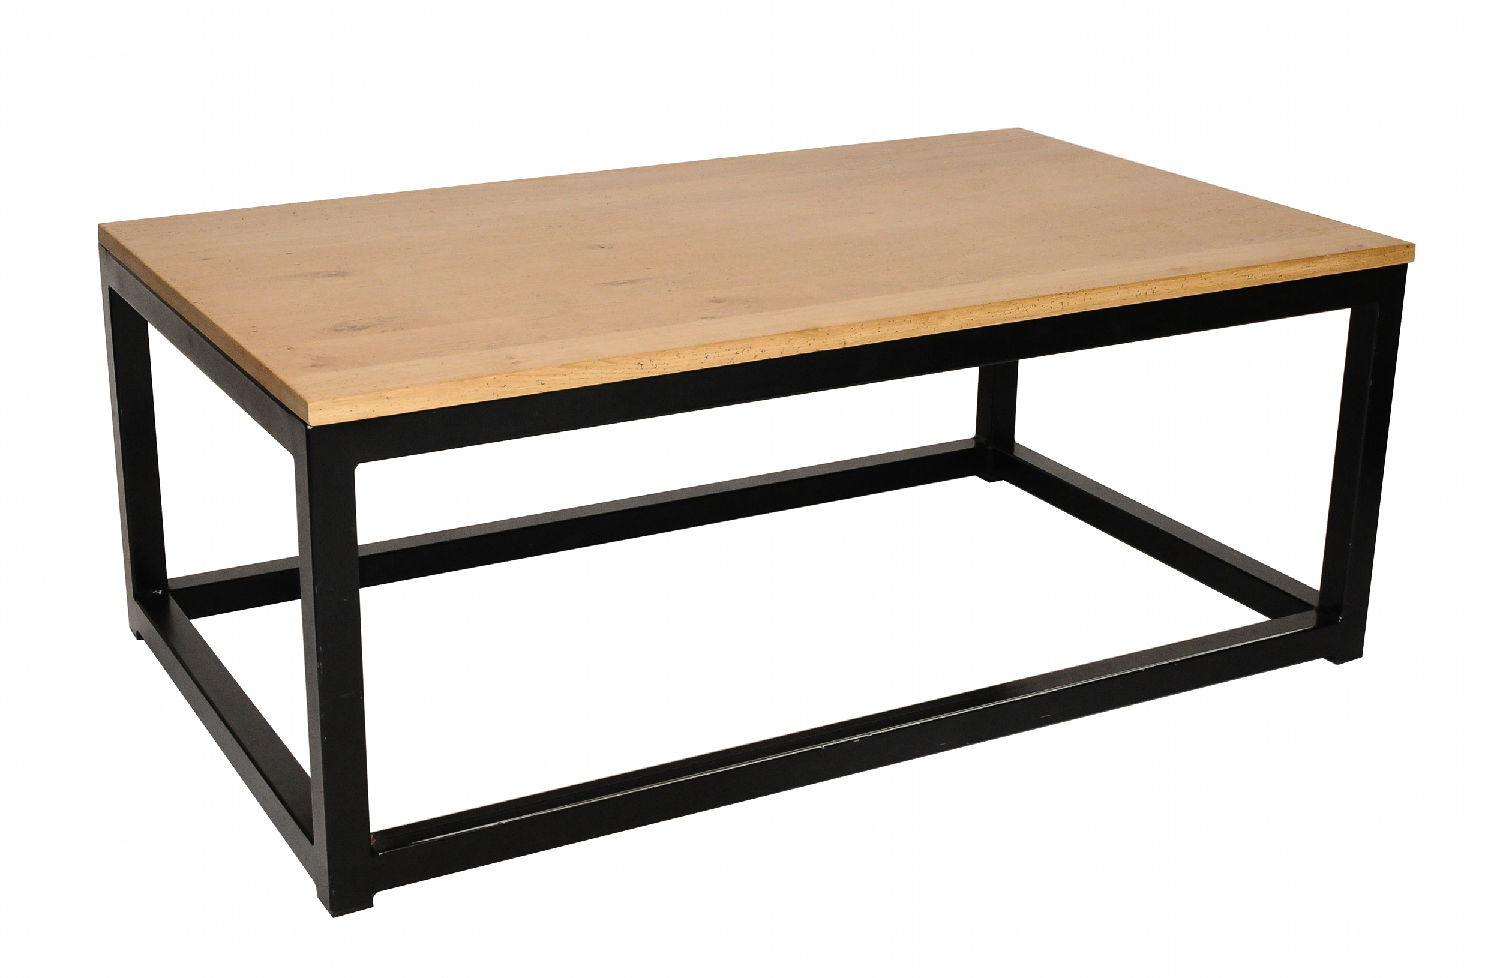 Table basse en fer et bois id es de d coration for Table basse bois et fer